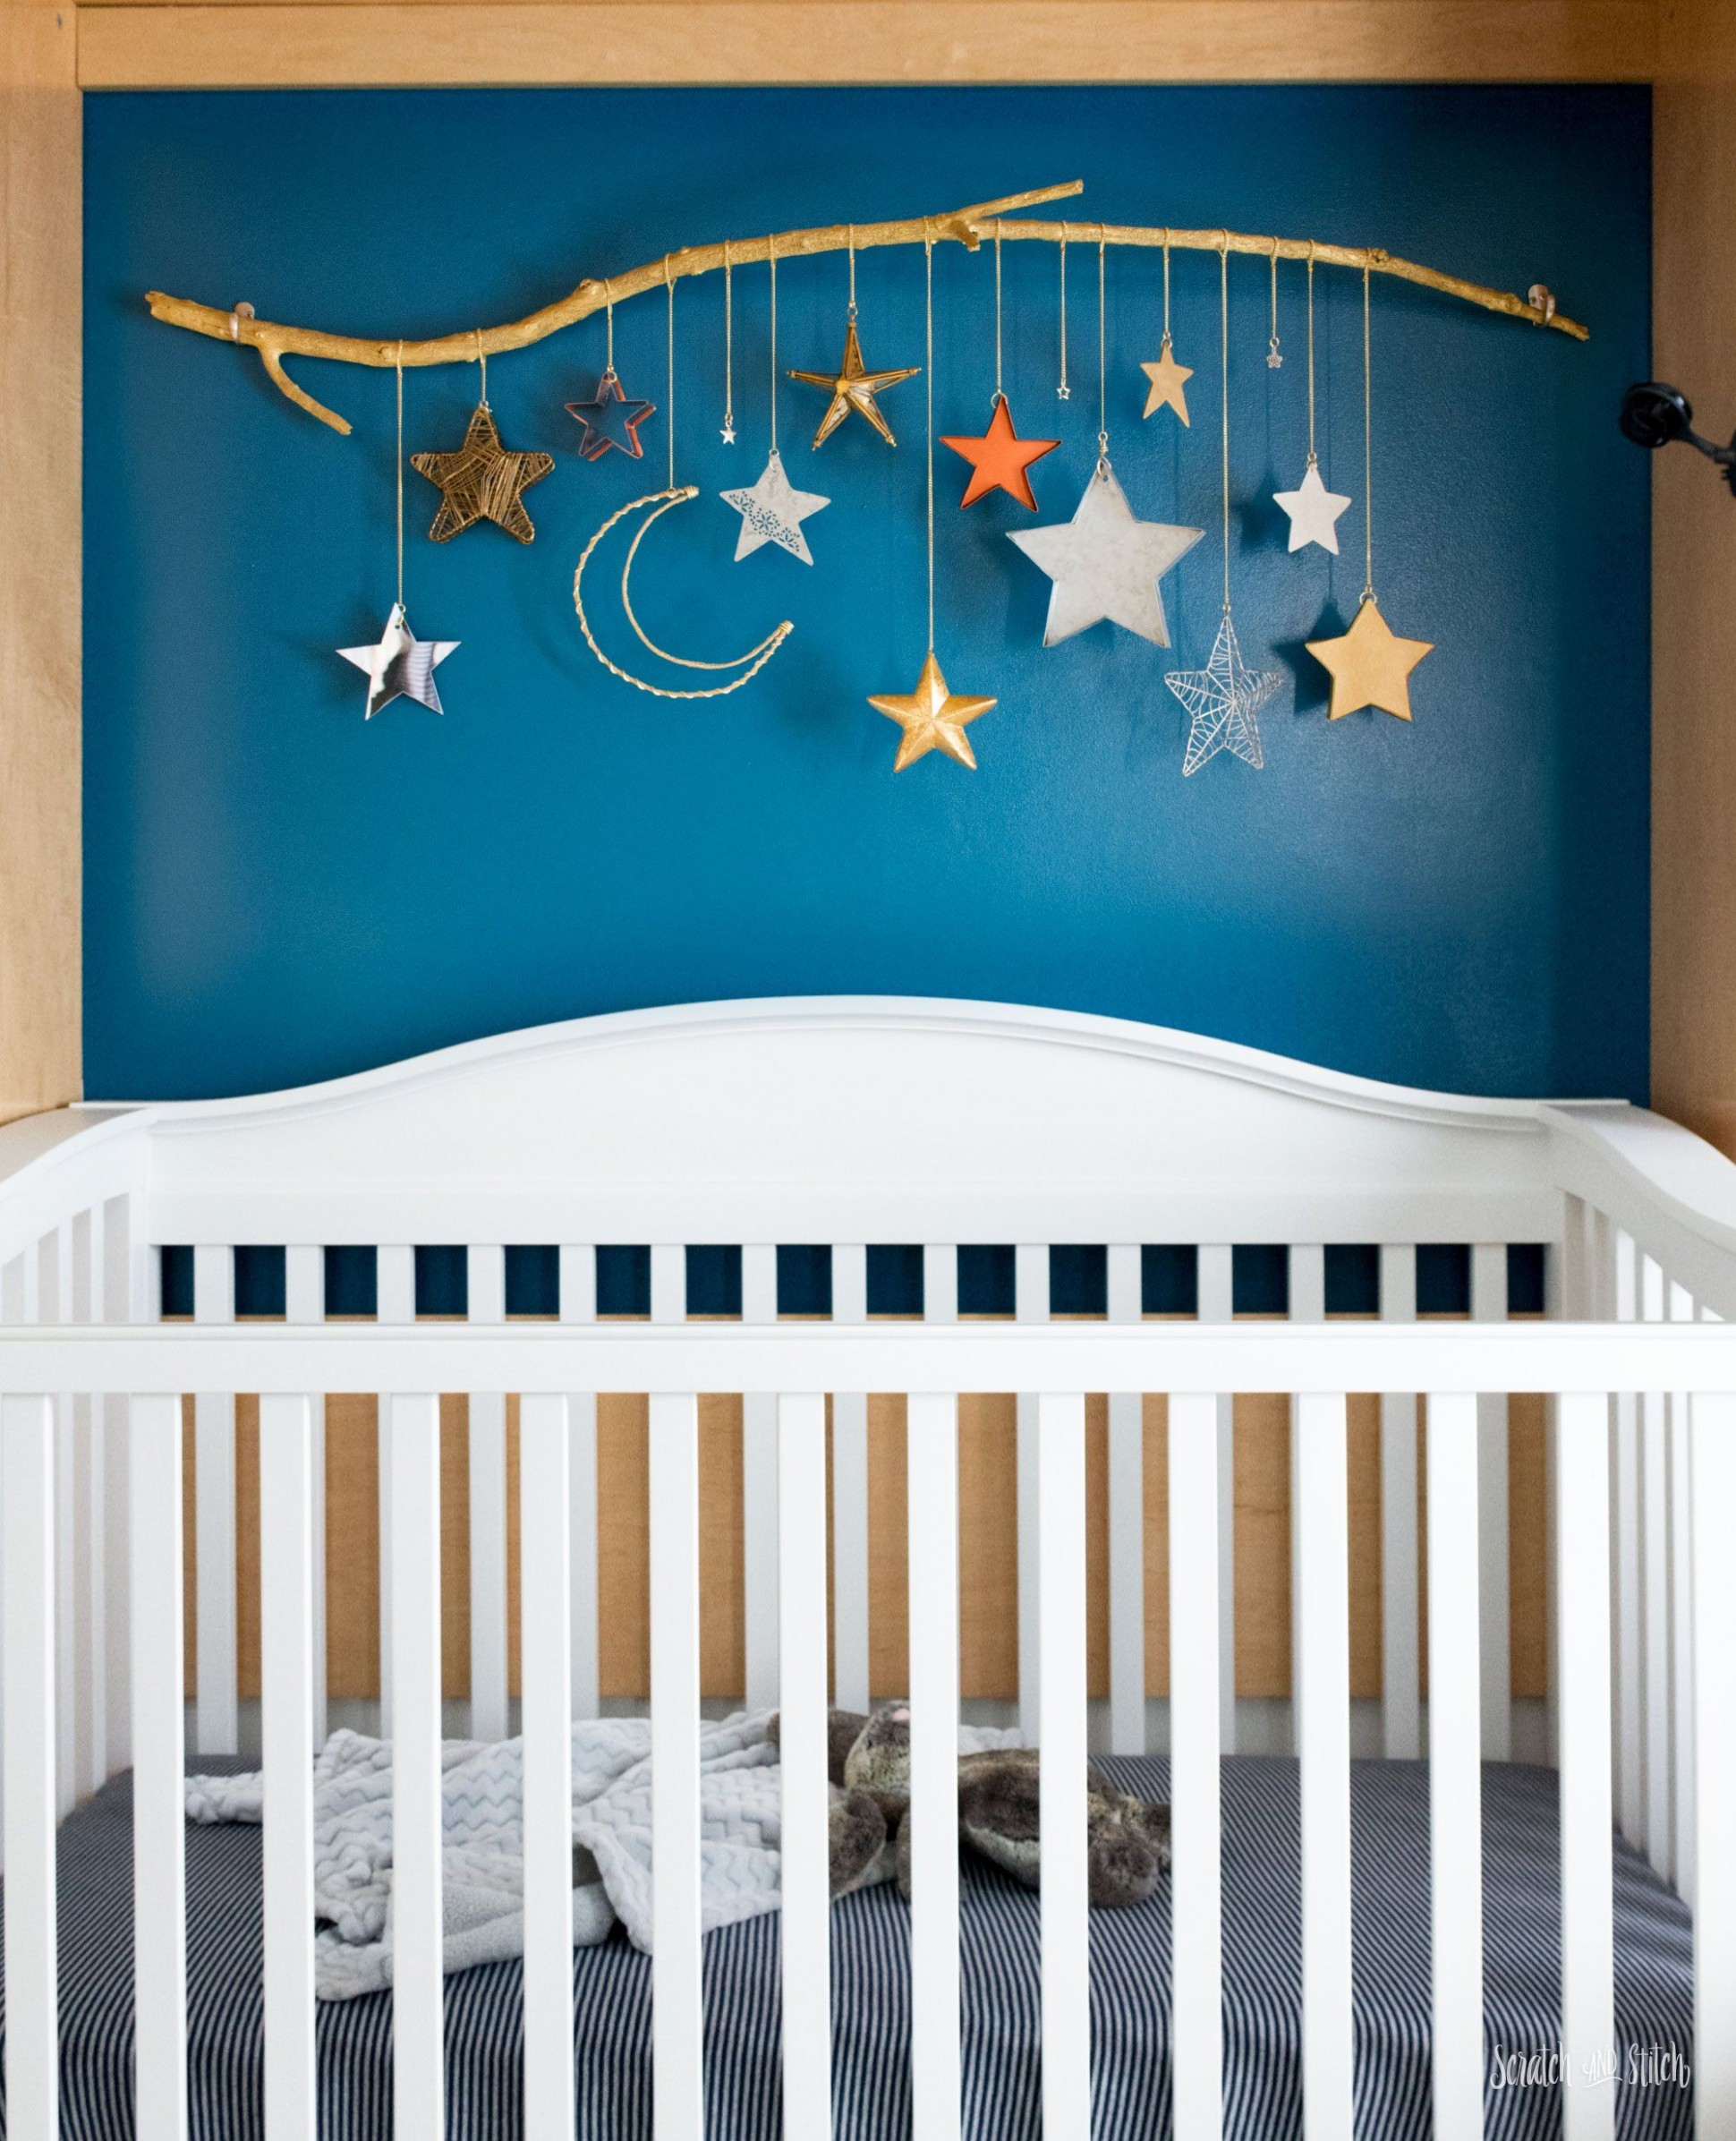 Pin on Baby Makes Three! - Baby Room Ornaments